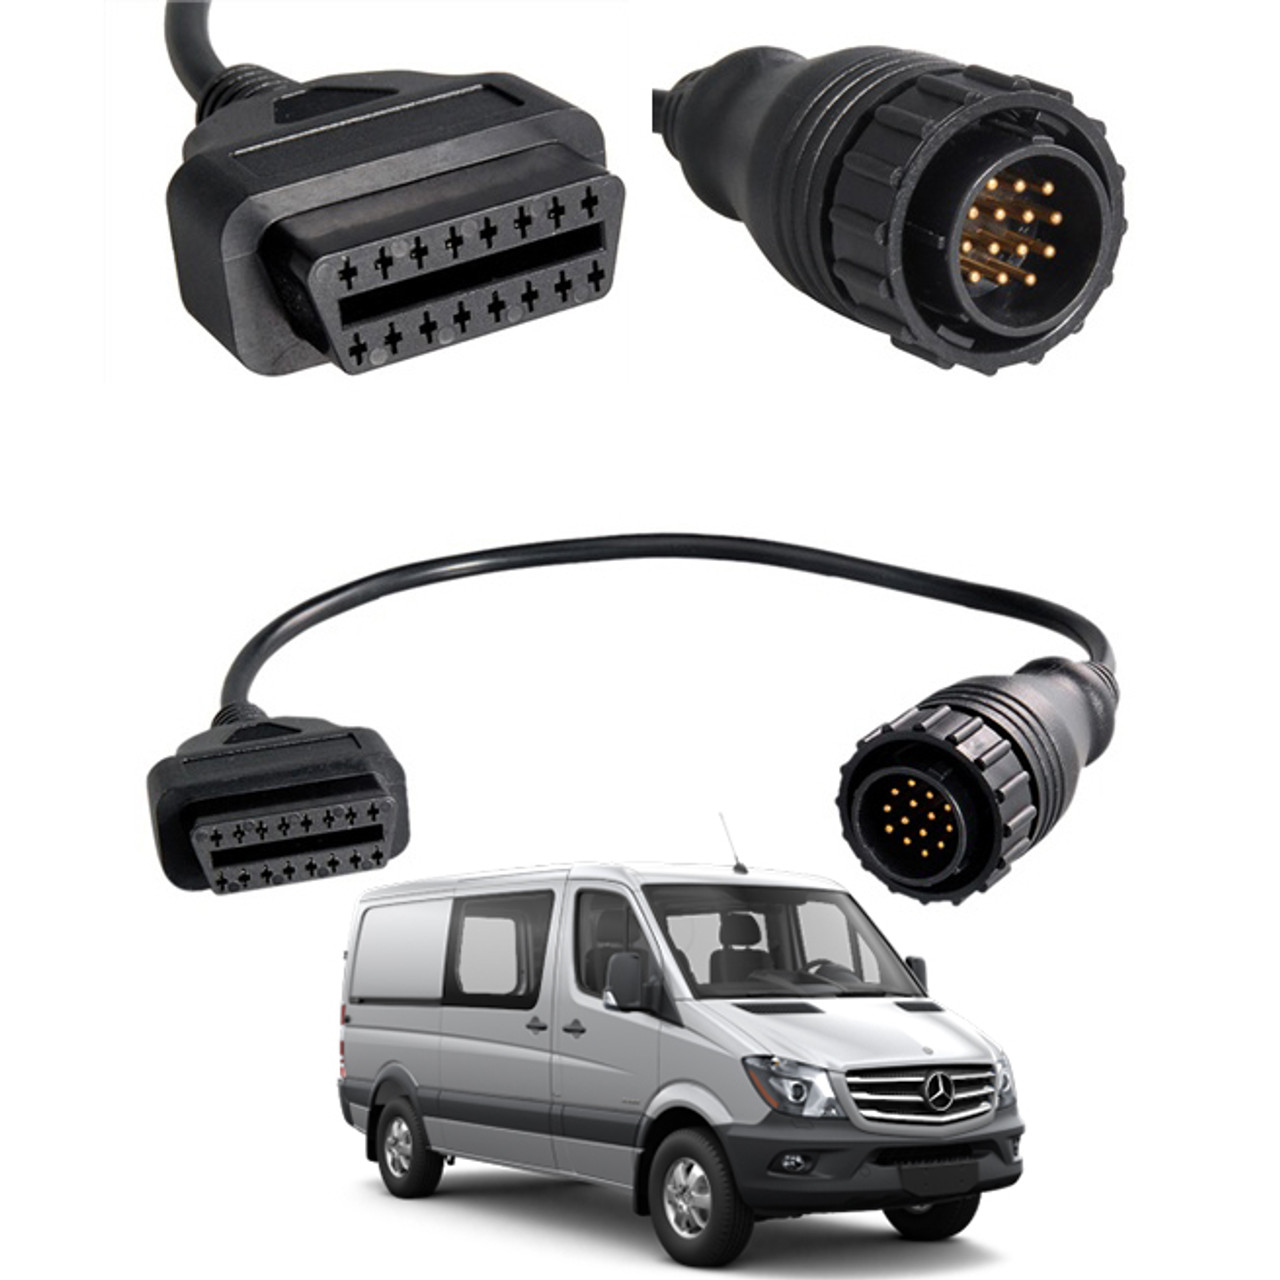 CONNECTOR for MERCEDES BENZ SPRINTER 14 PIN to 16 PIN OBD DIAGNOSTIC ADAPTER